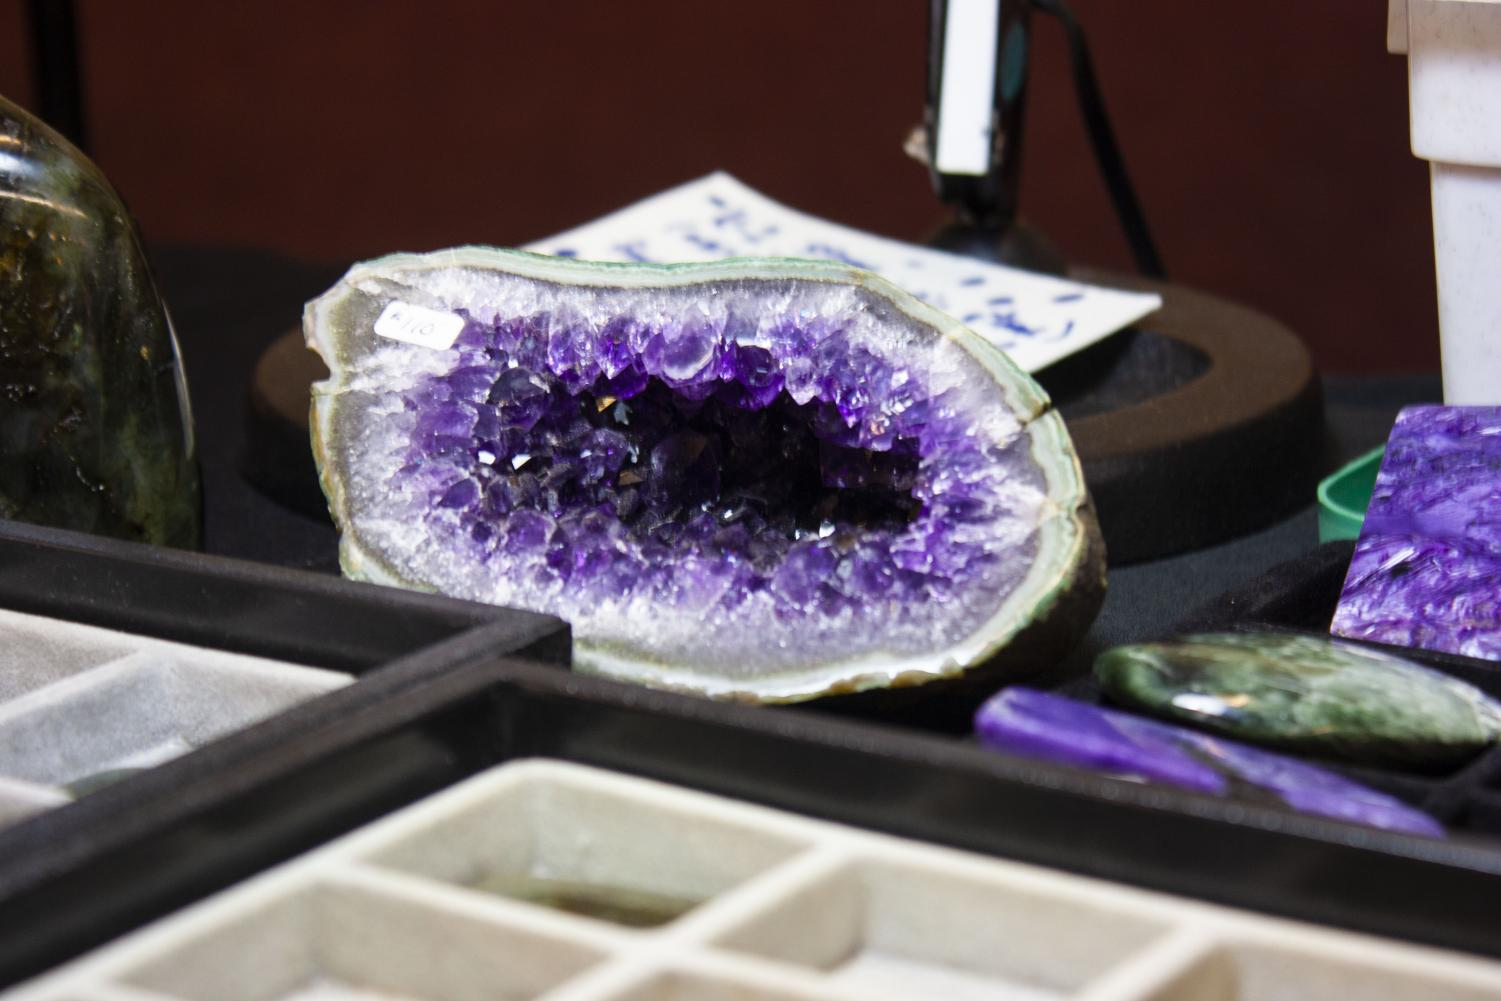 The+purple+crystals+of+this+geode+classify+it+as+an+amethyst.+